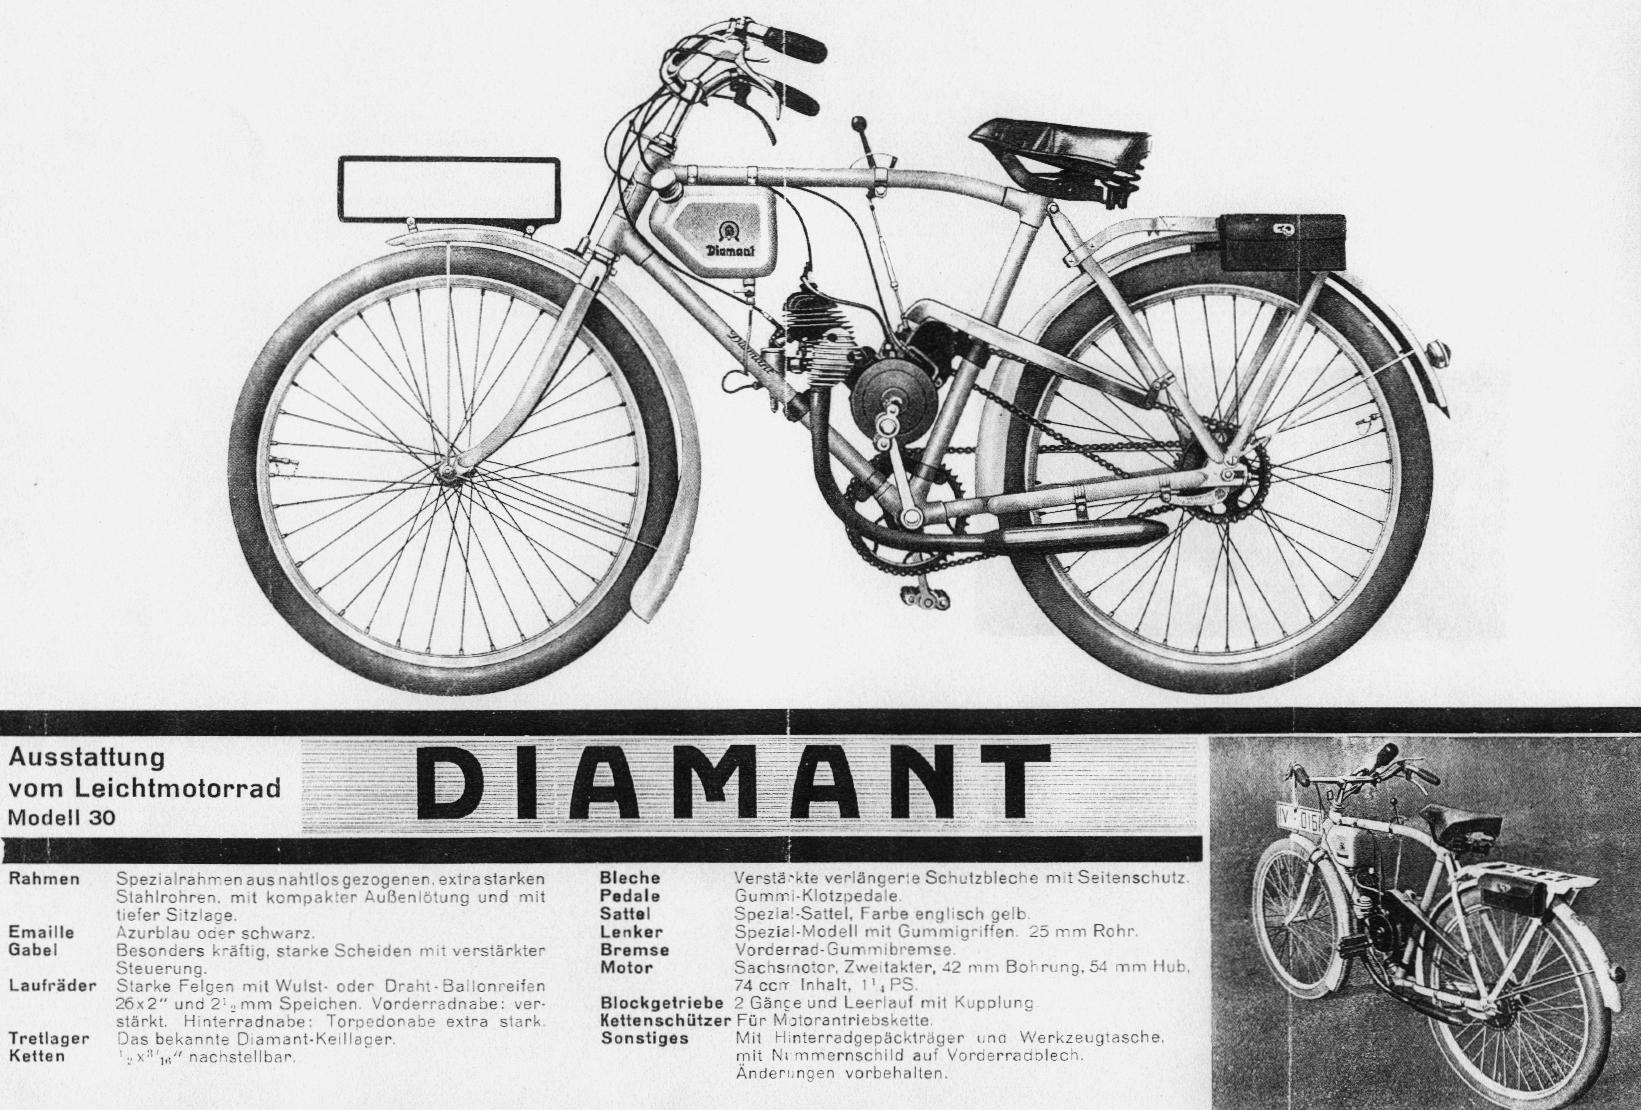 European Lightweight Motorized Bicycles